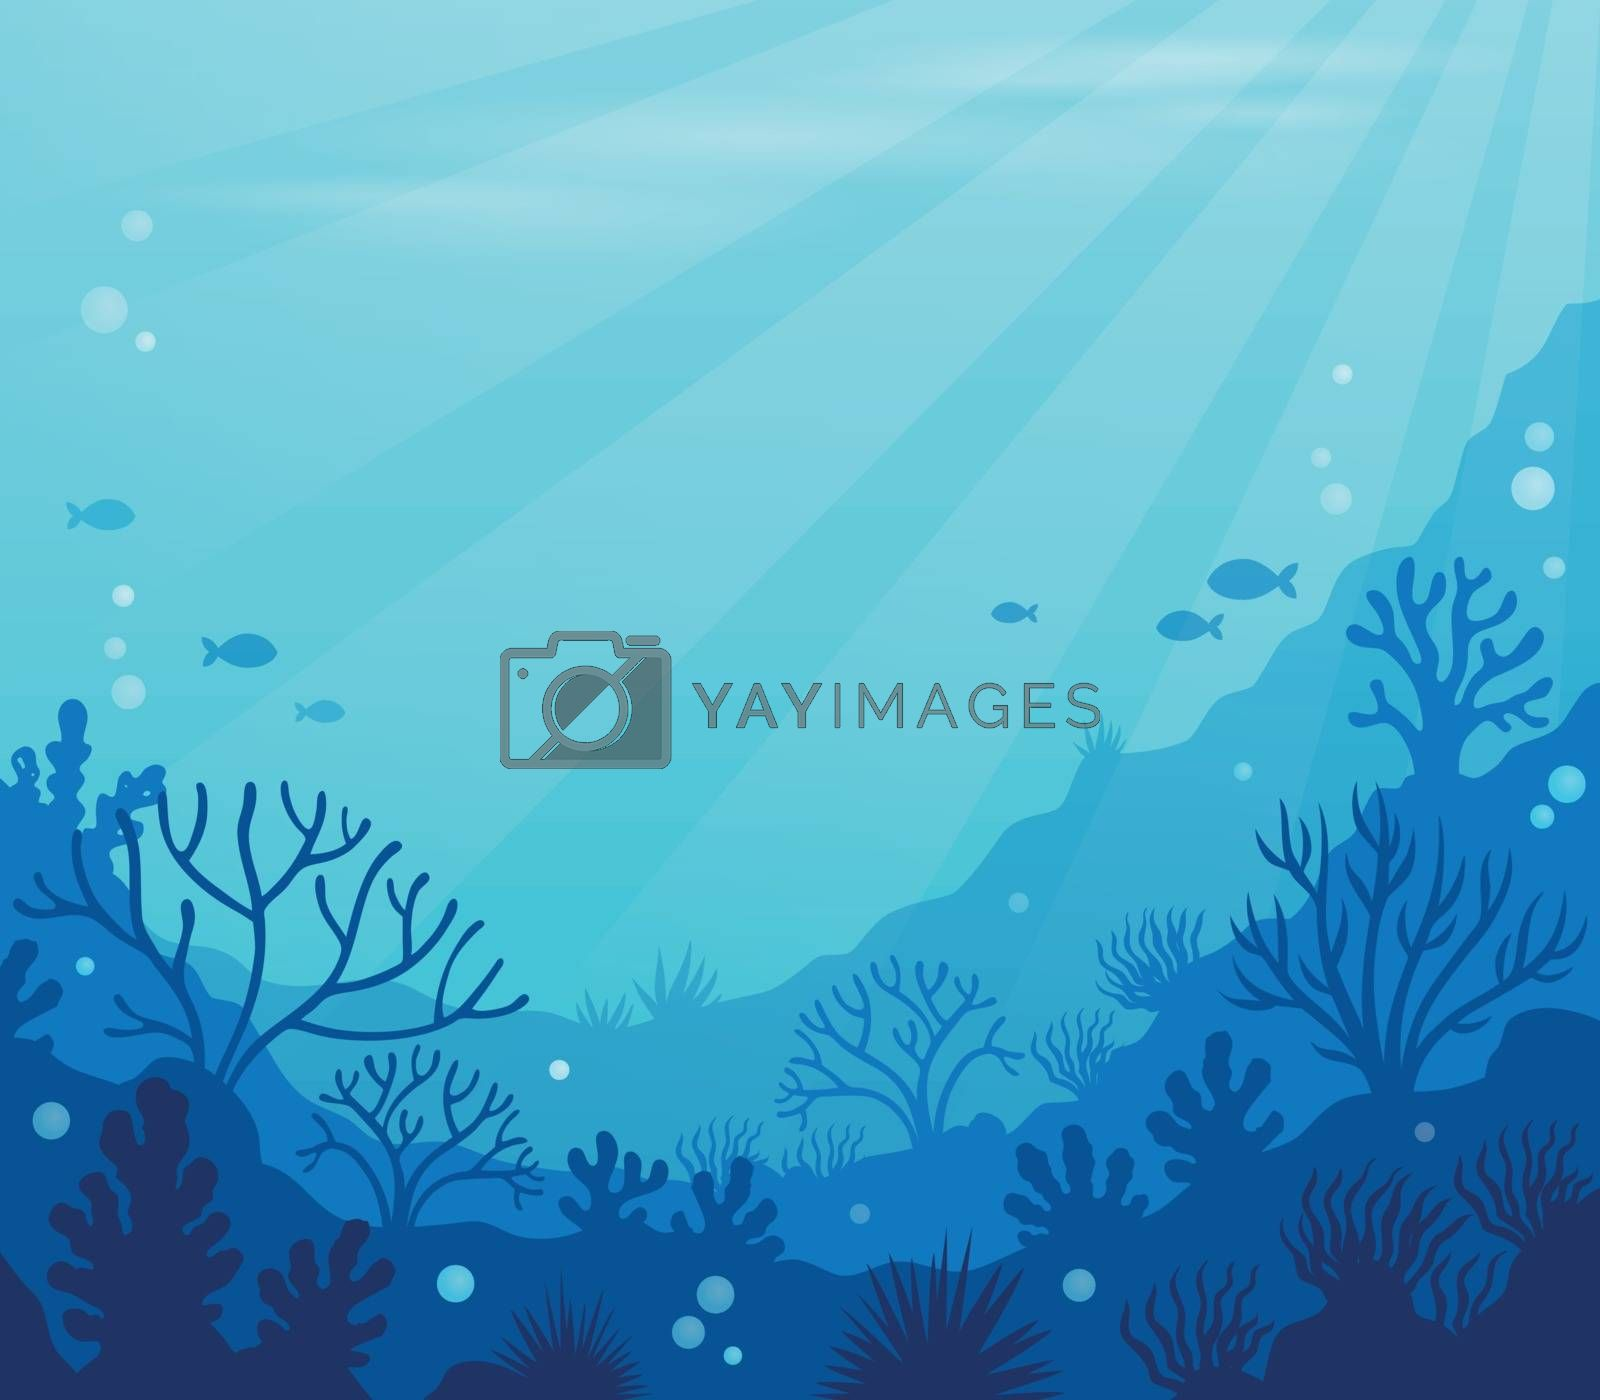 Ocean underwater theme background 8 - eps10 vector illustration.